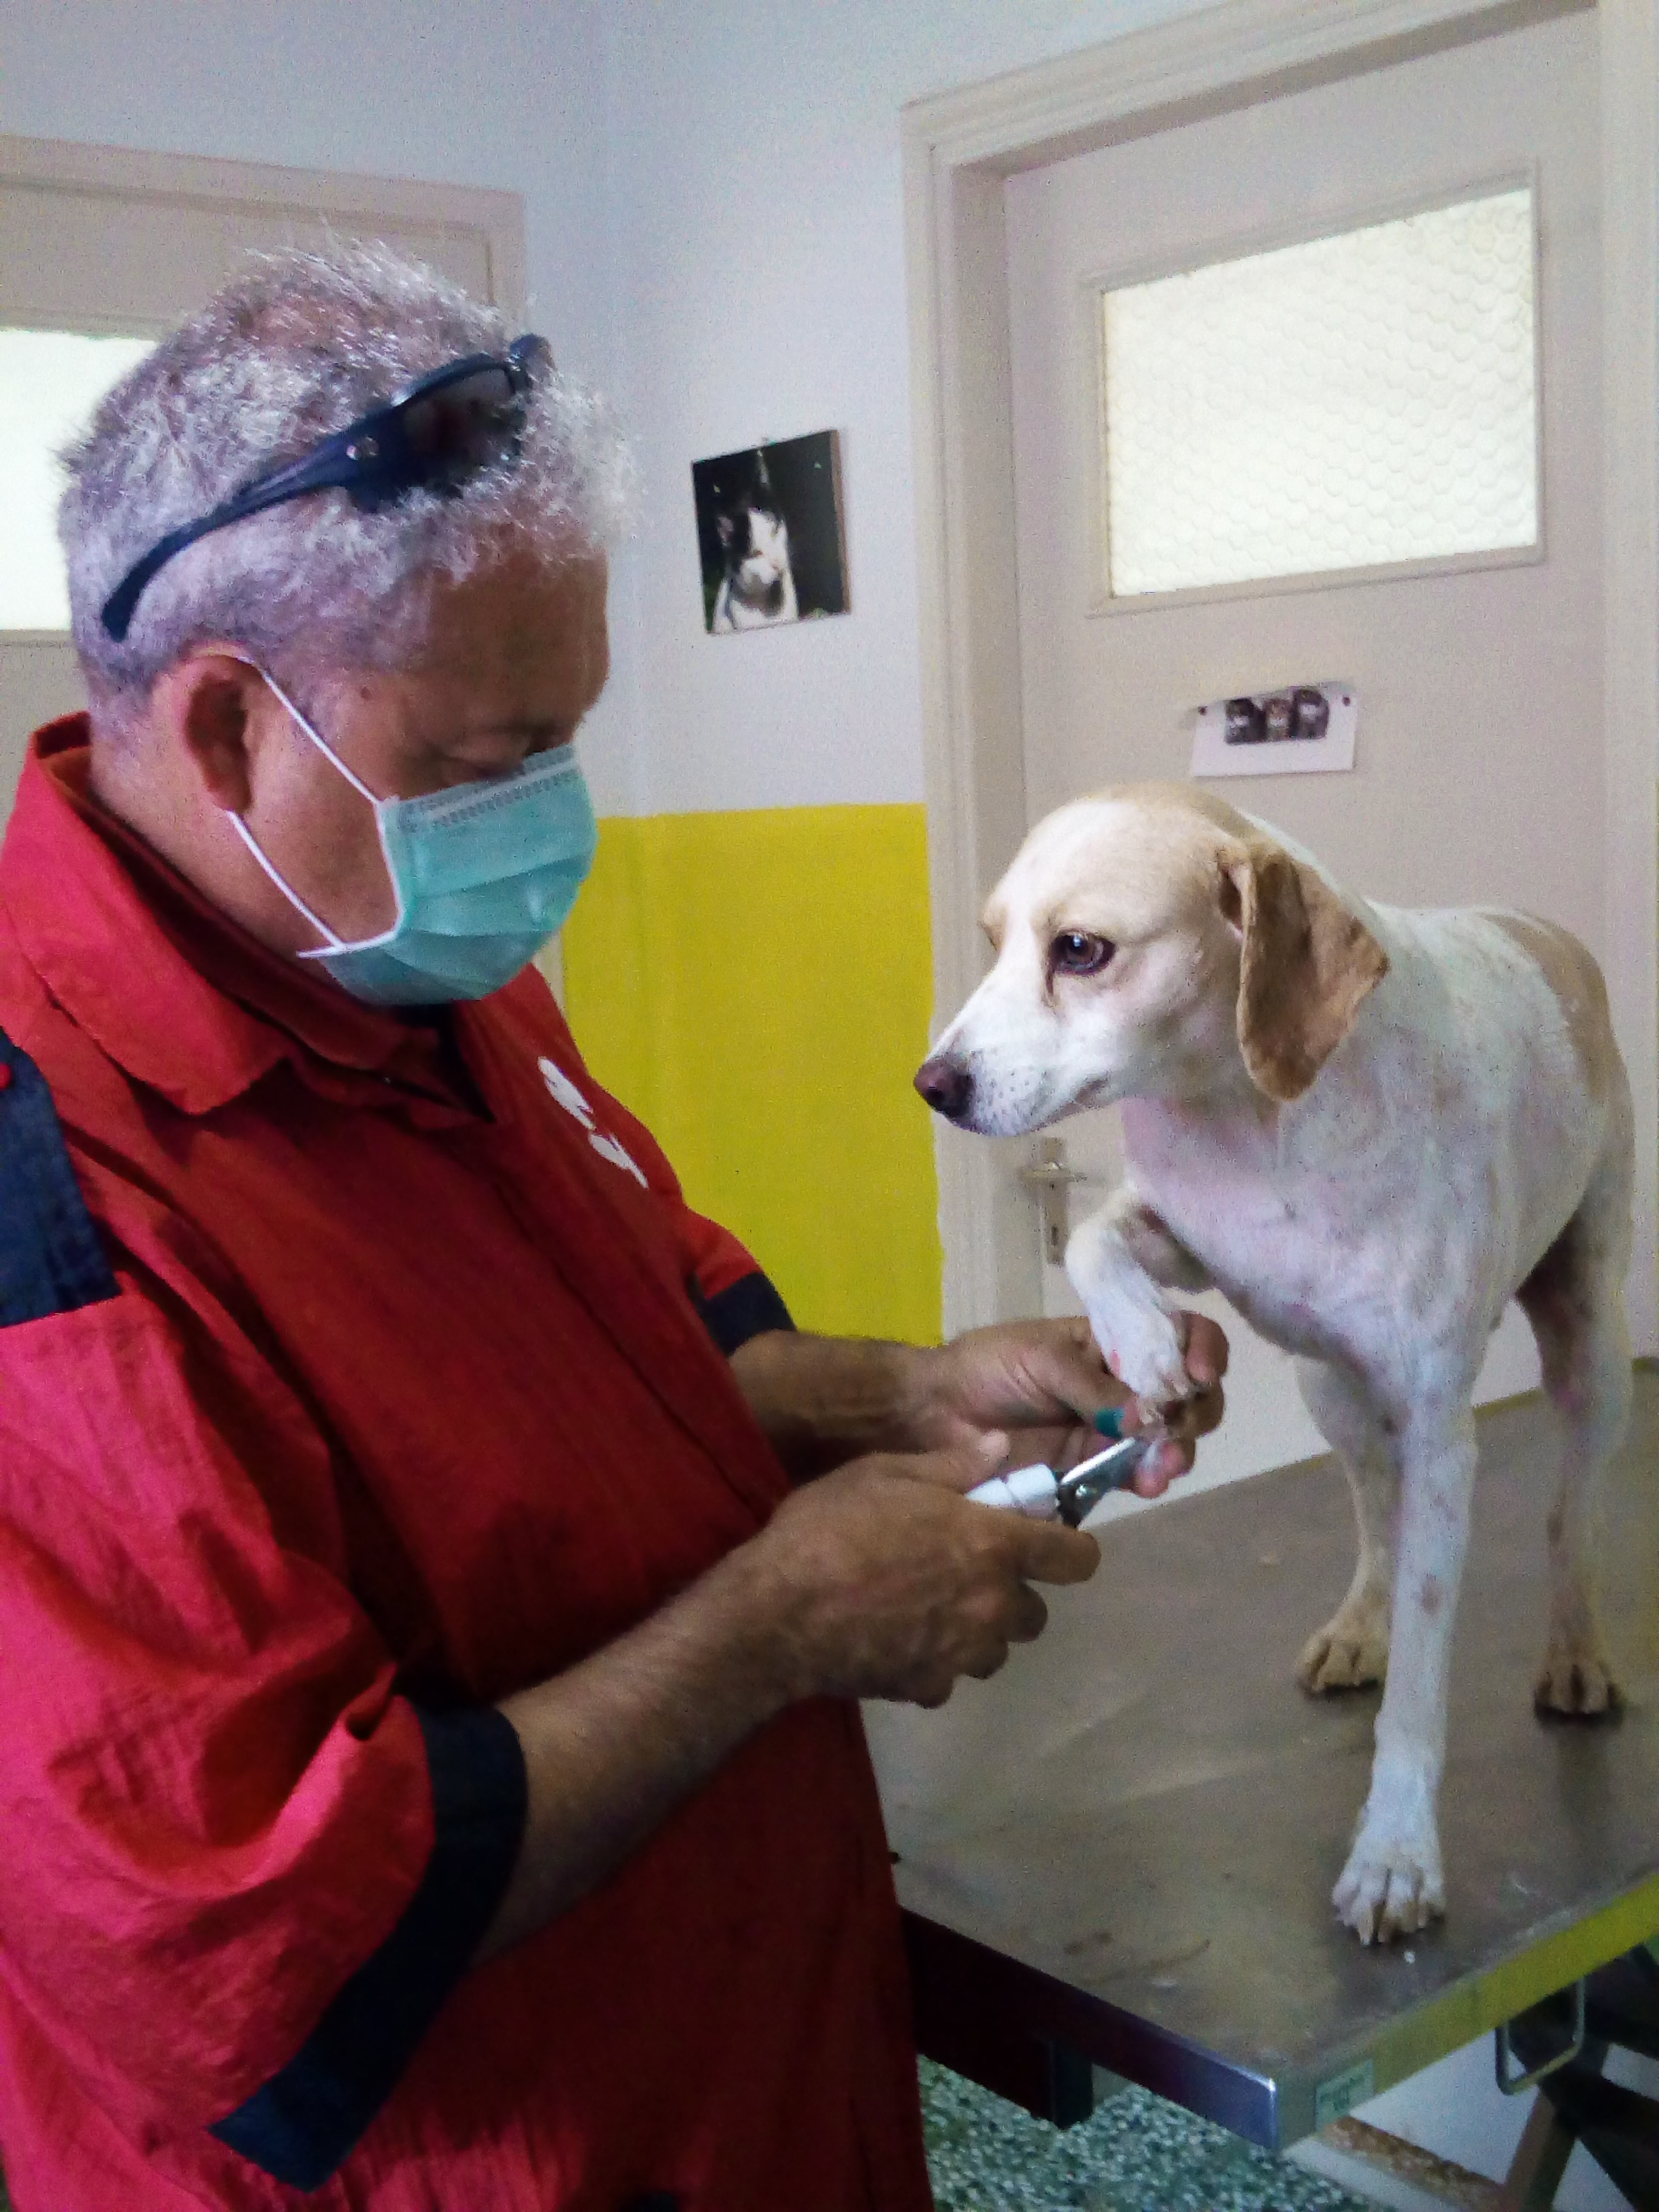 Dr. Vasalakis cuts the nails of our dog Liza